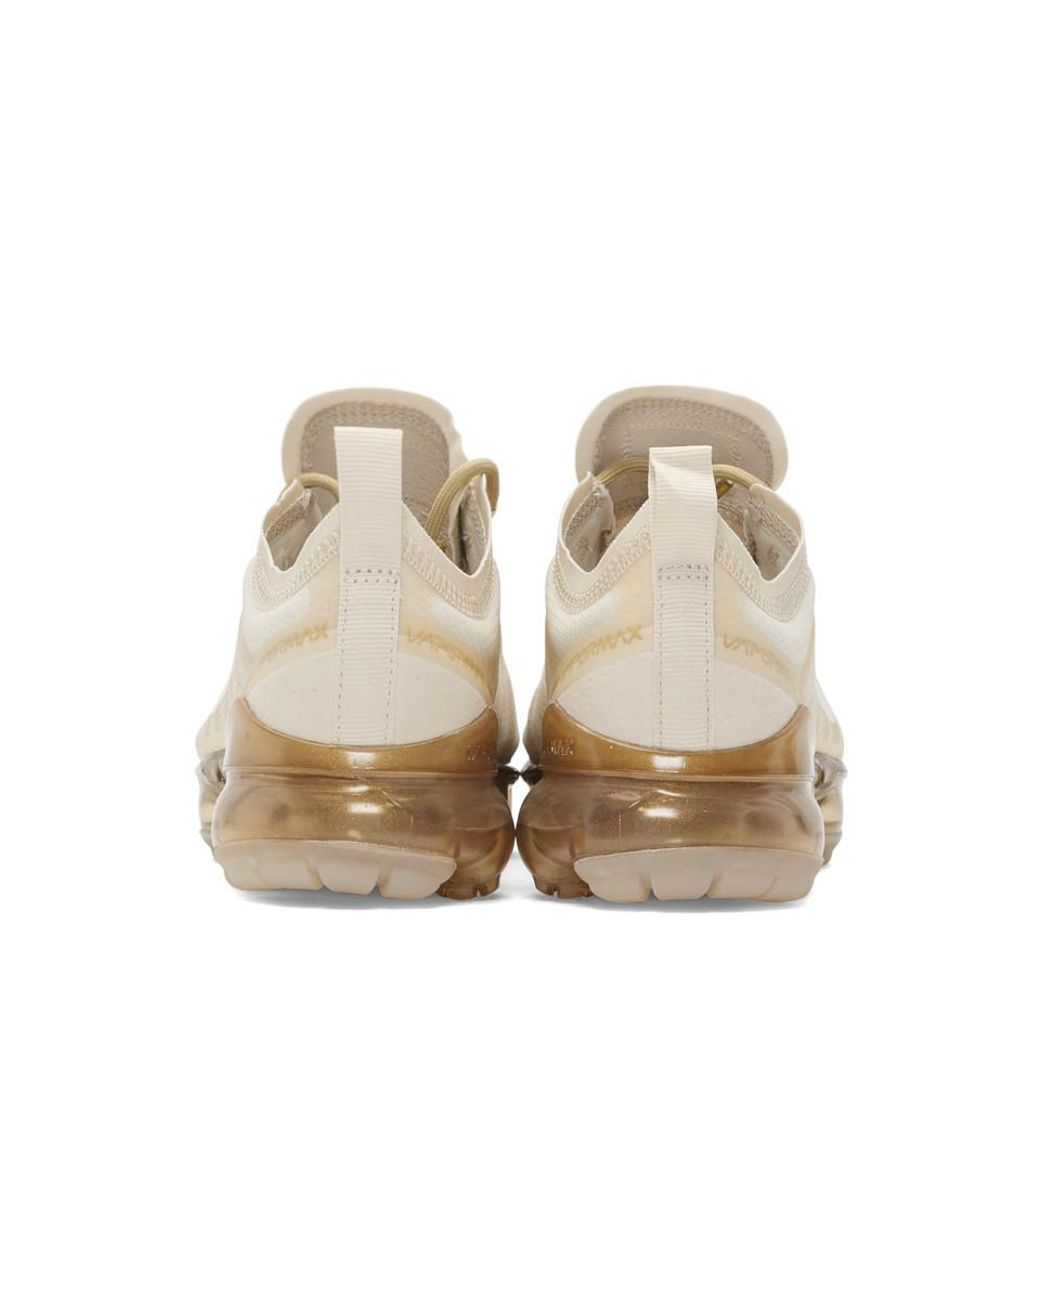 Nike Nike Off White & Beige Air Vapormax 2019 Sneakers from SSENSE   People